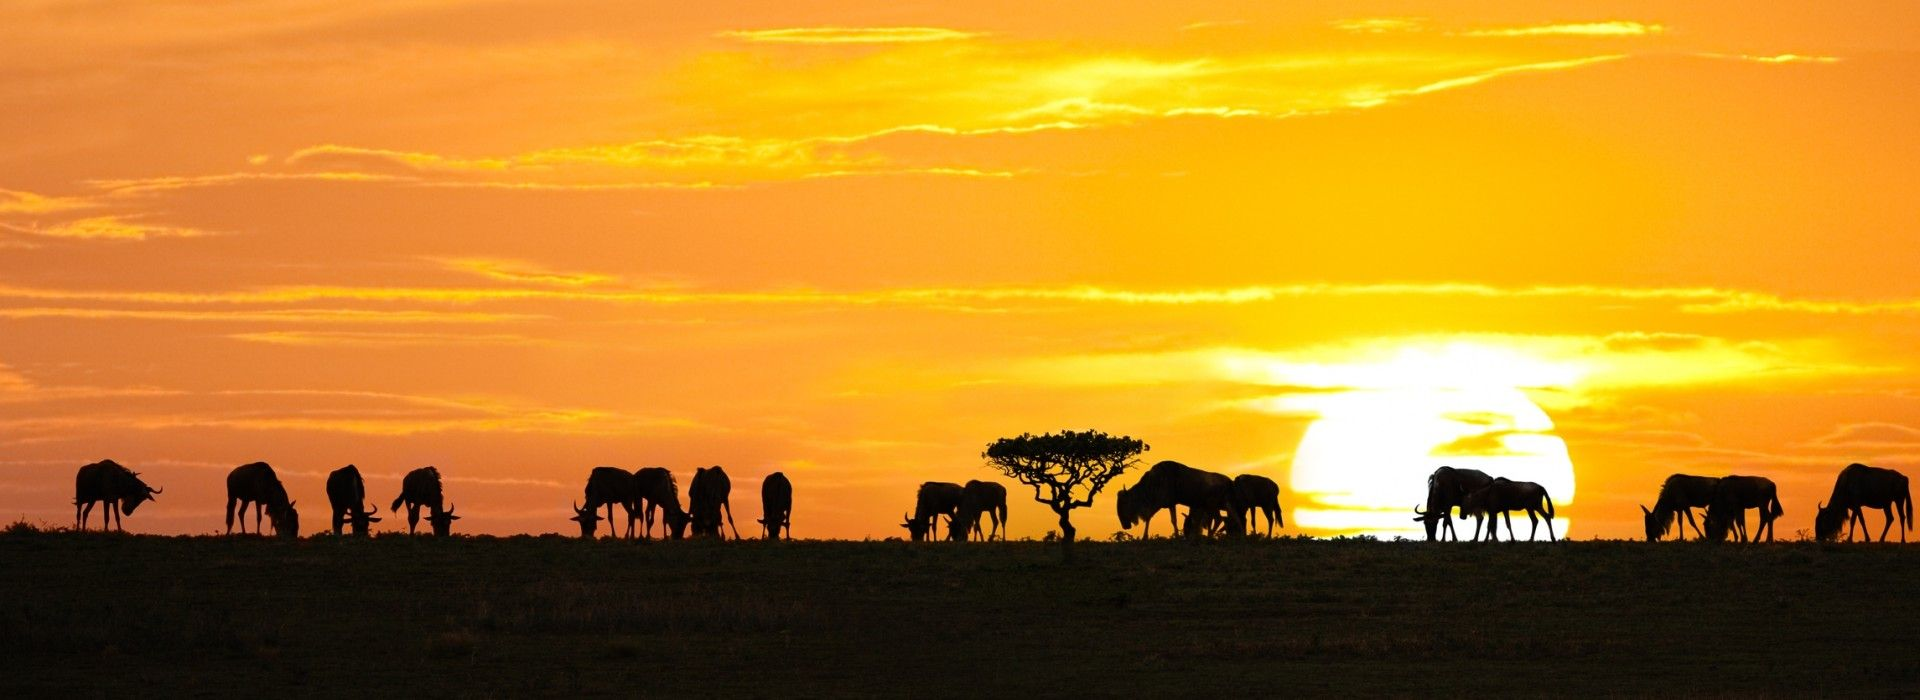 Wildlife, landscapes and nature Tours in Tanzania